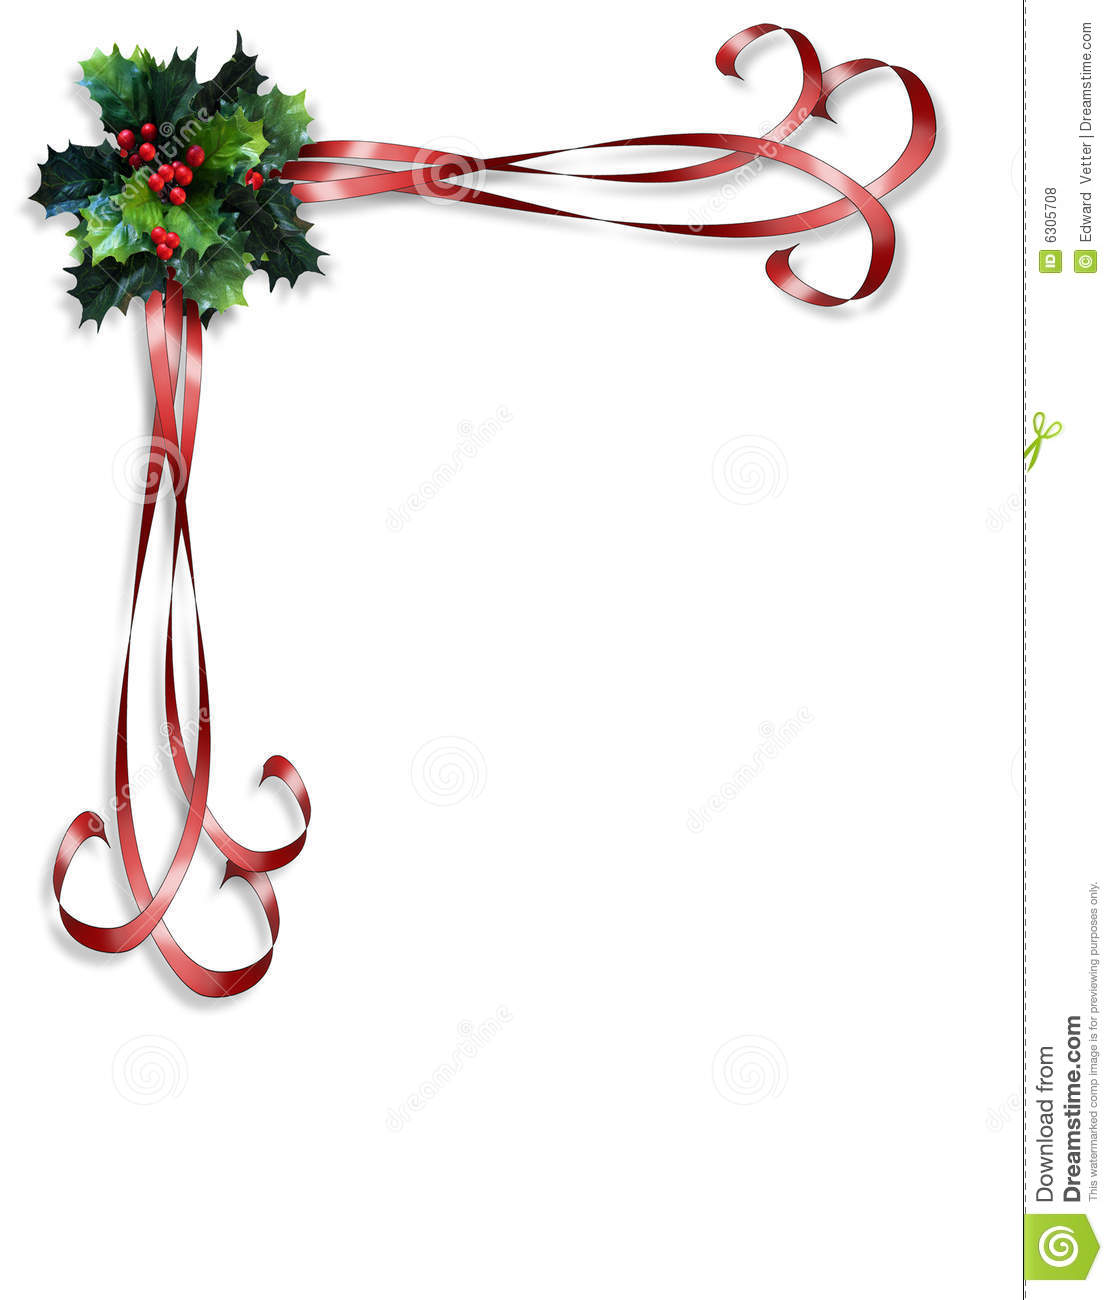 Christmas Holly And Ribbons Border Royalty Free Stock Photos ...